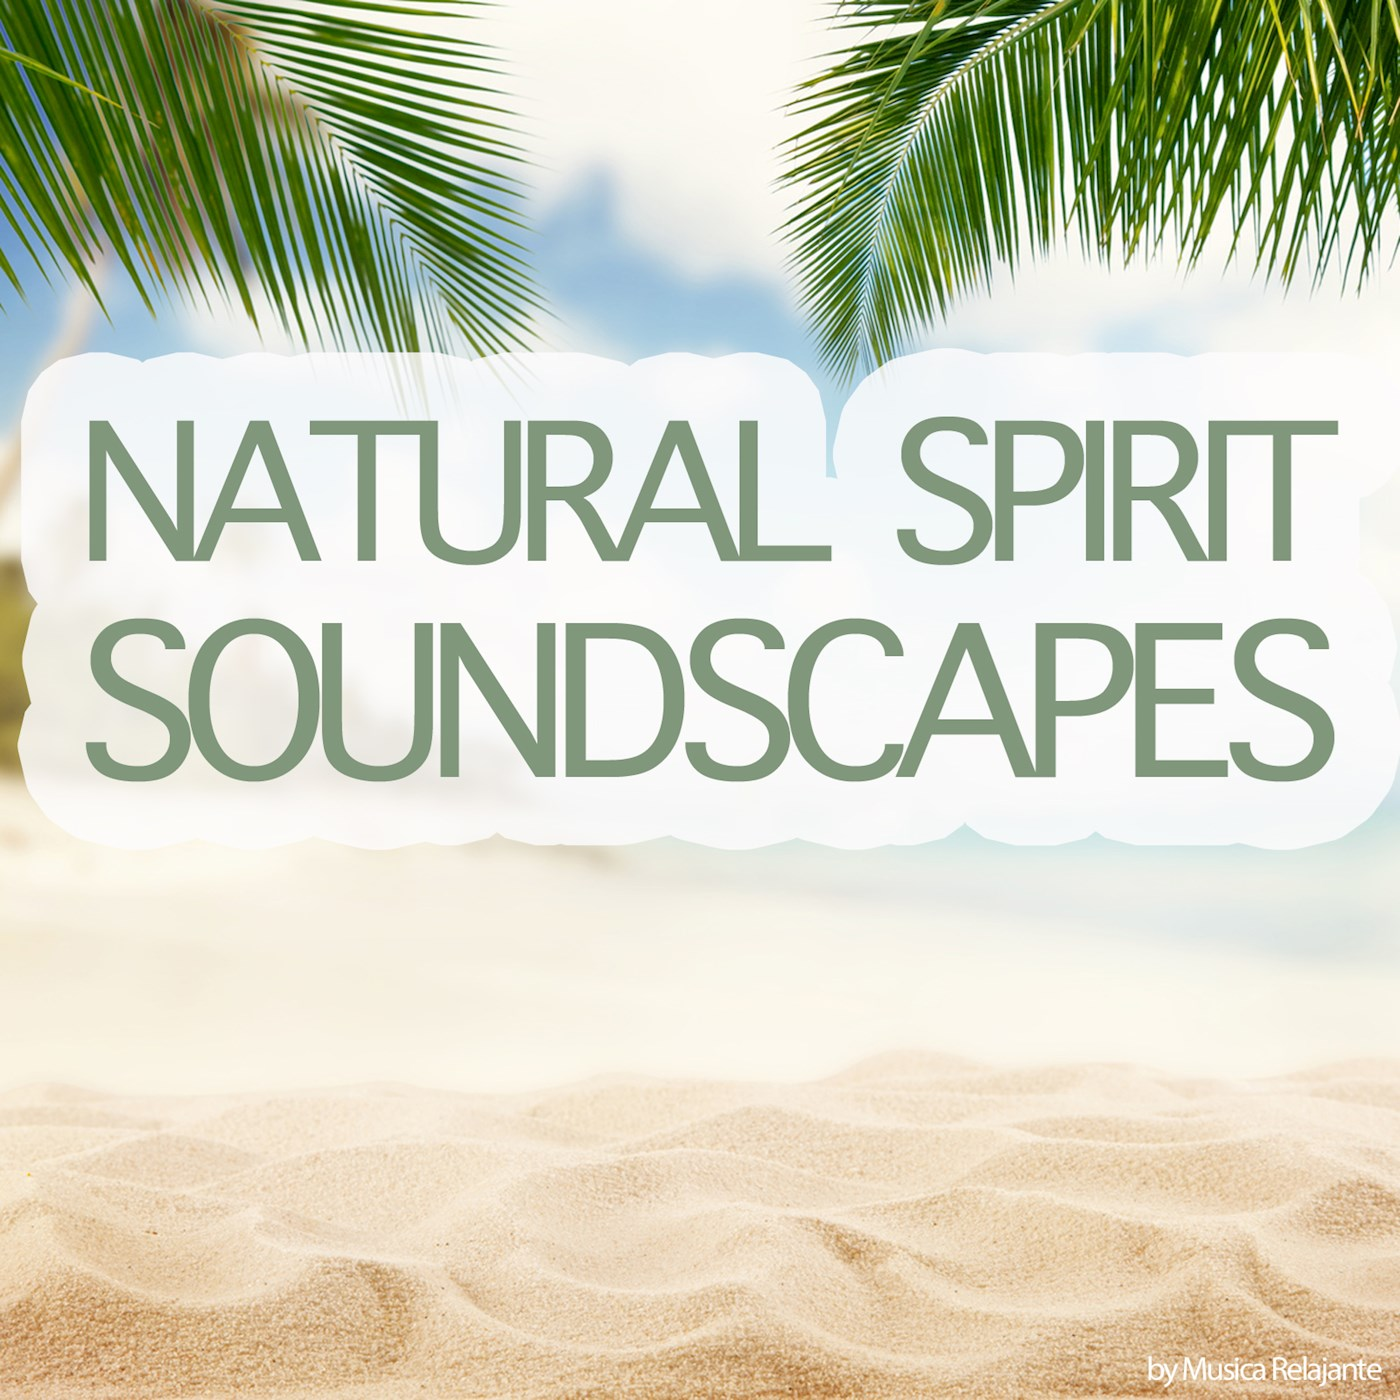 Natural Spirit Soundscapes